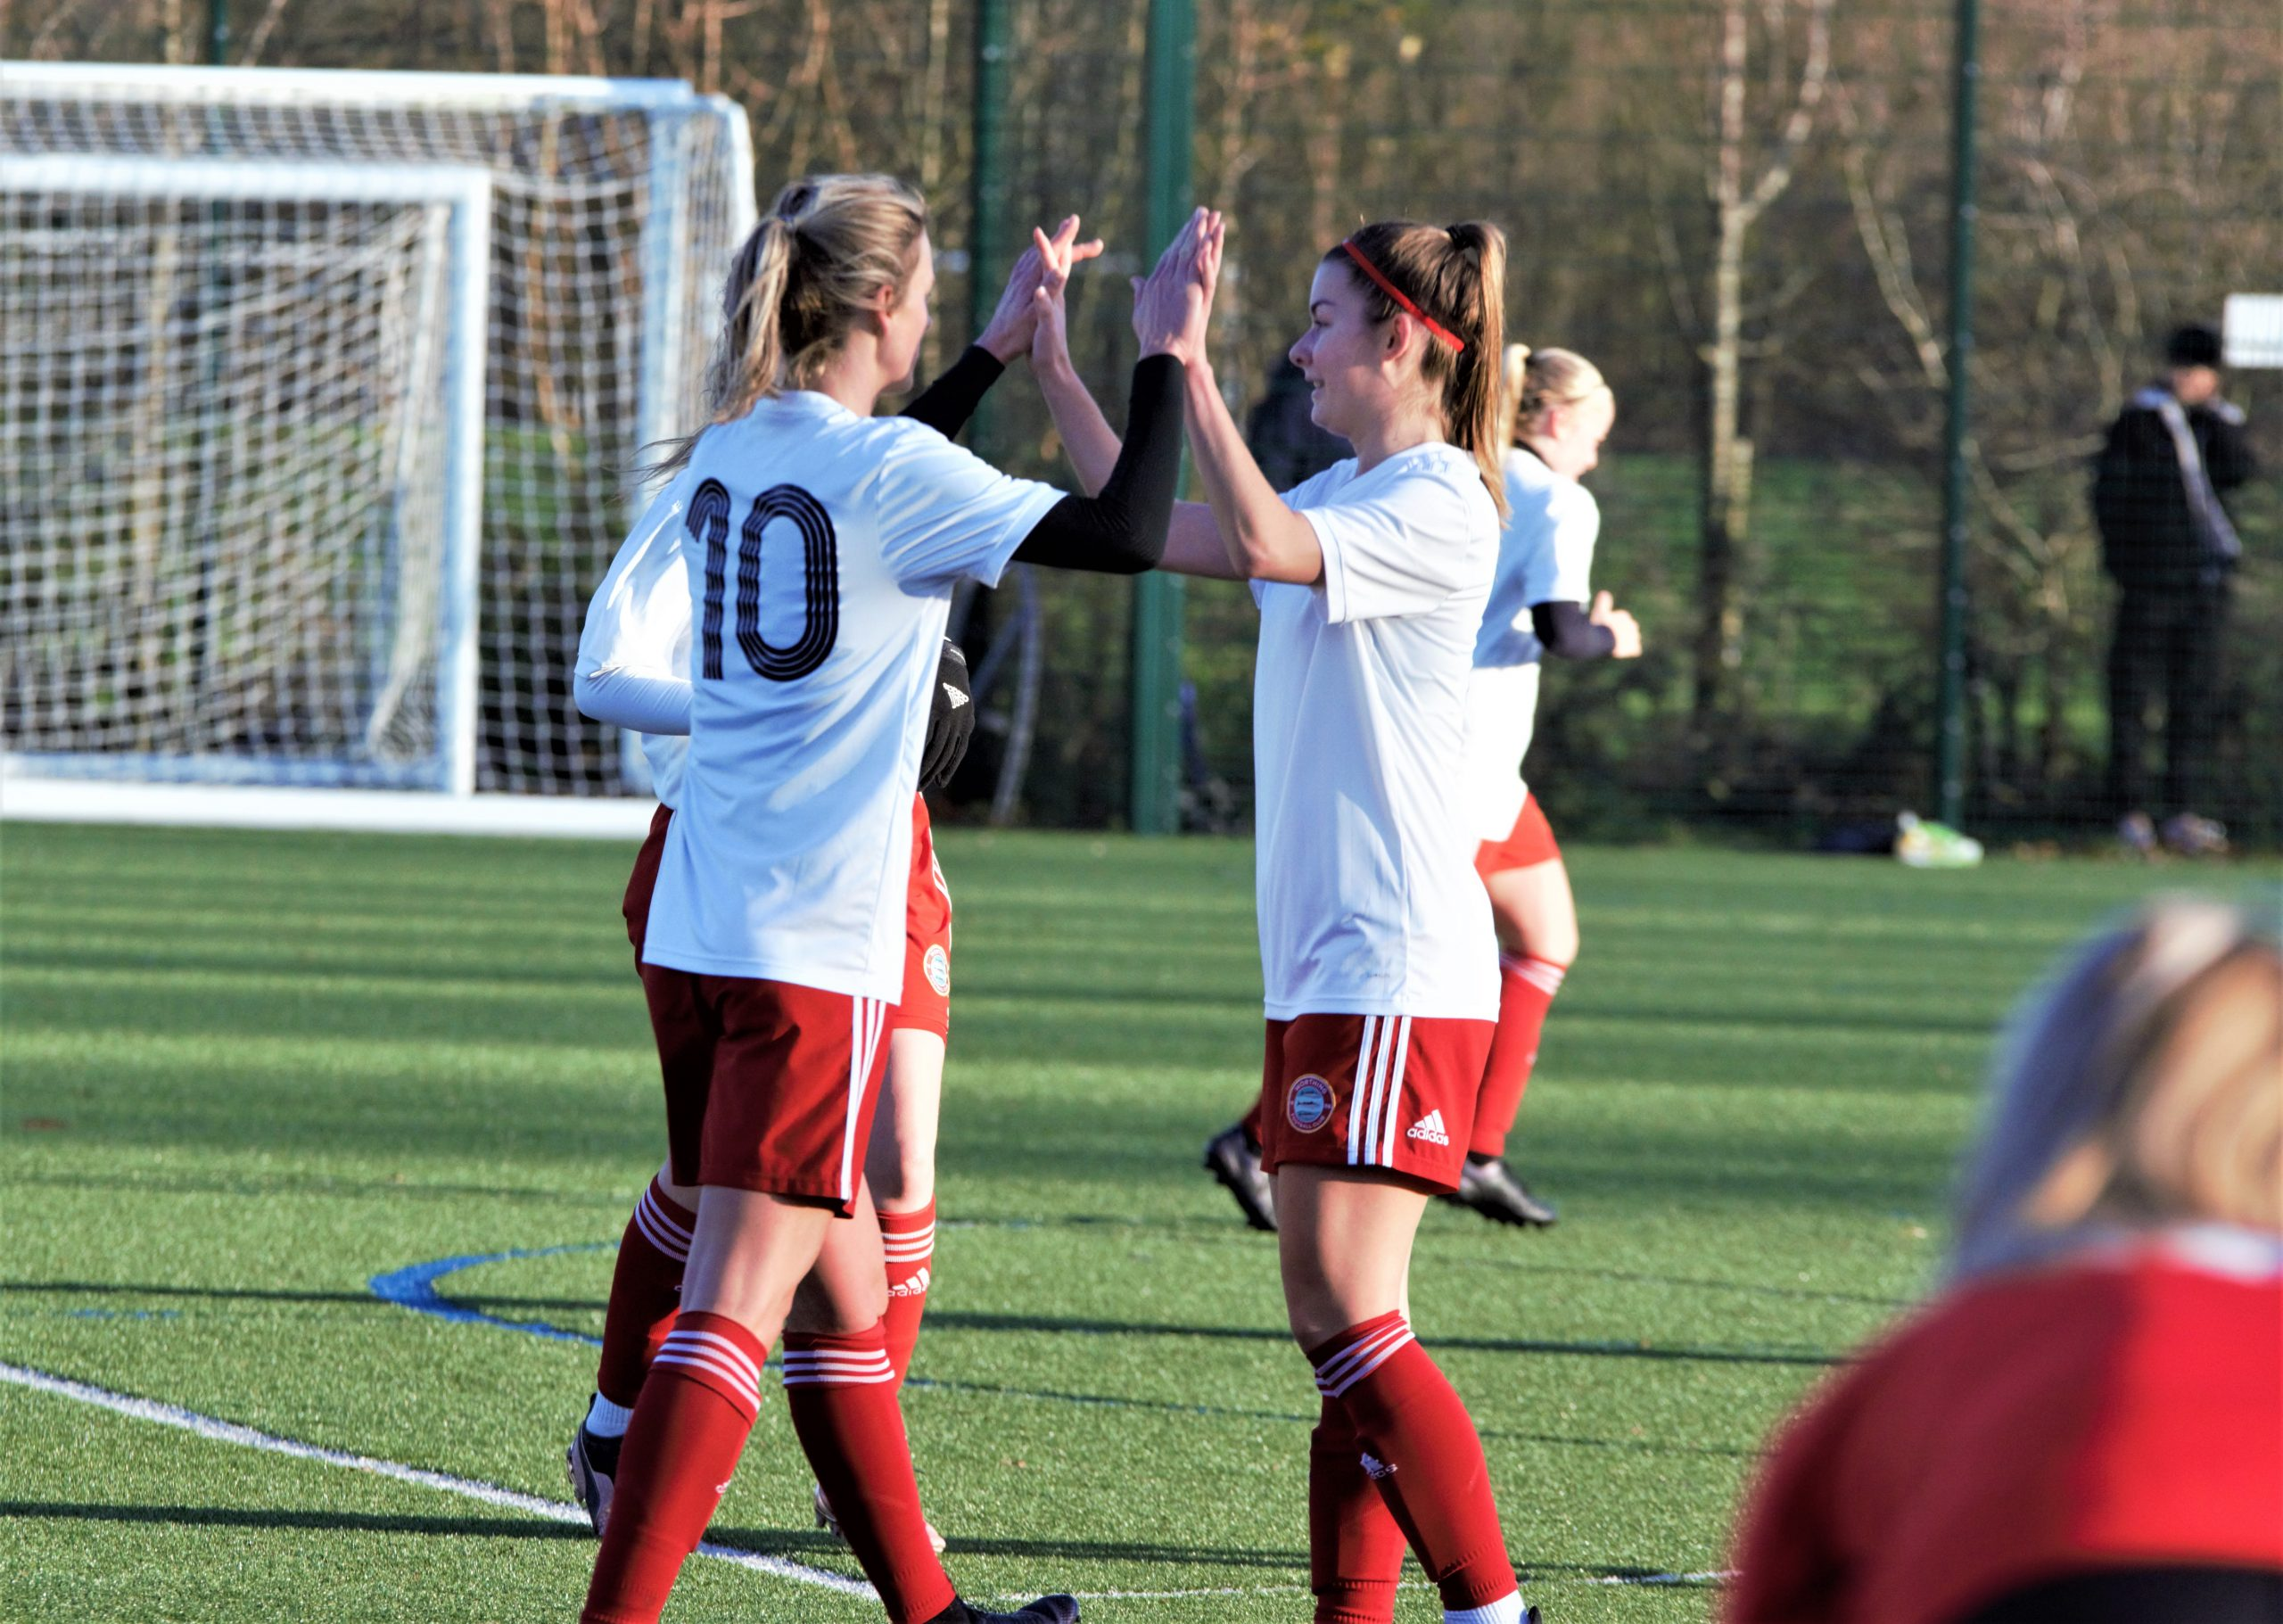 Read the full article - Reds round off year with victory over Rookettes